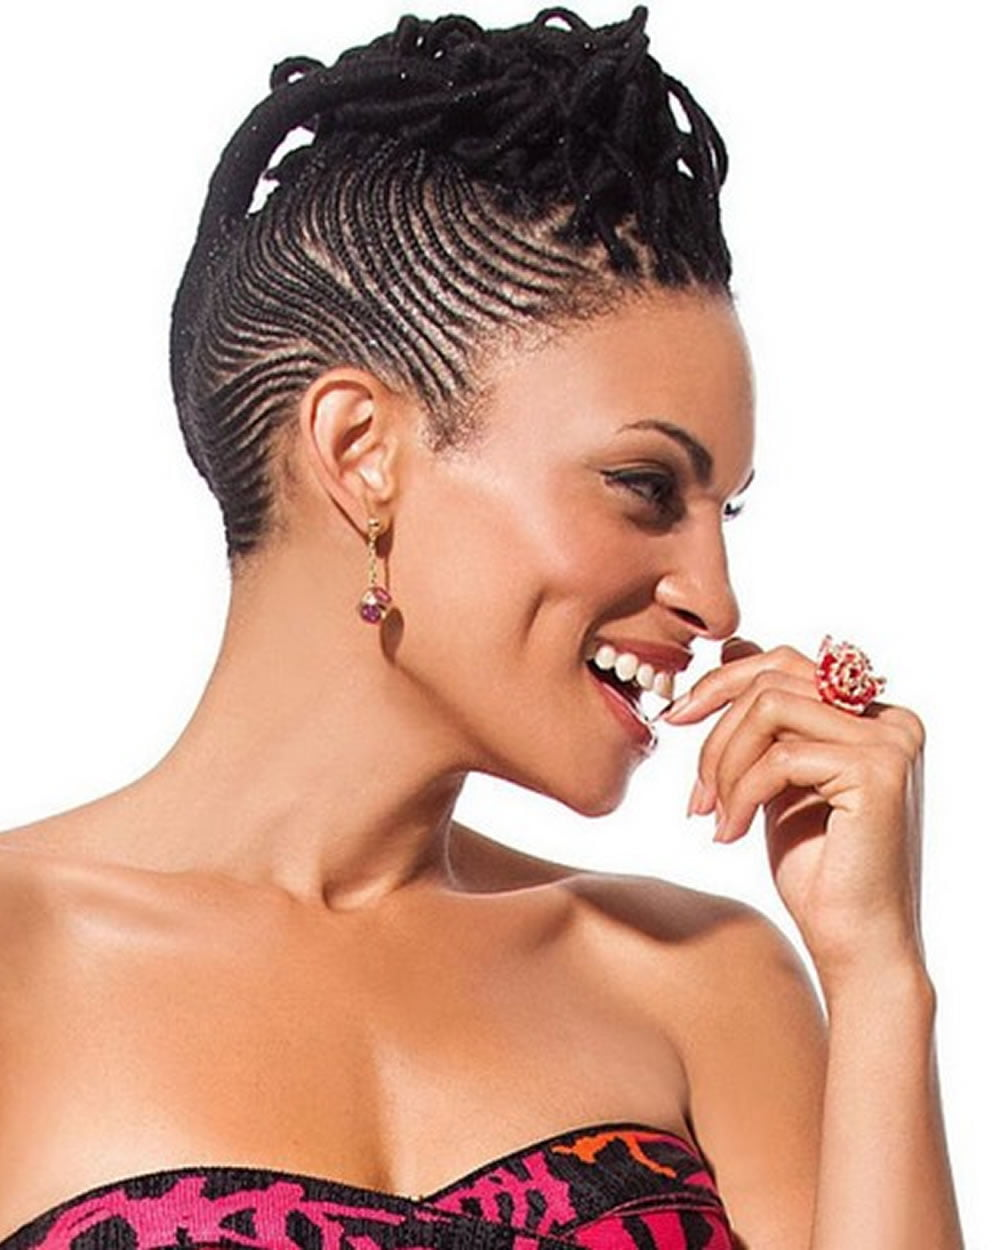 Cornrow Hairstyles for Black Women 20182019  Page 4